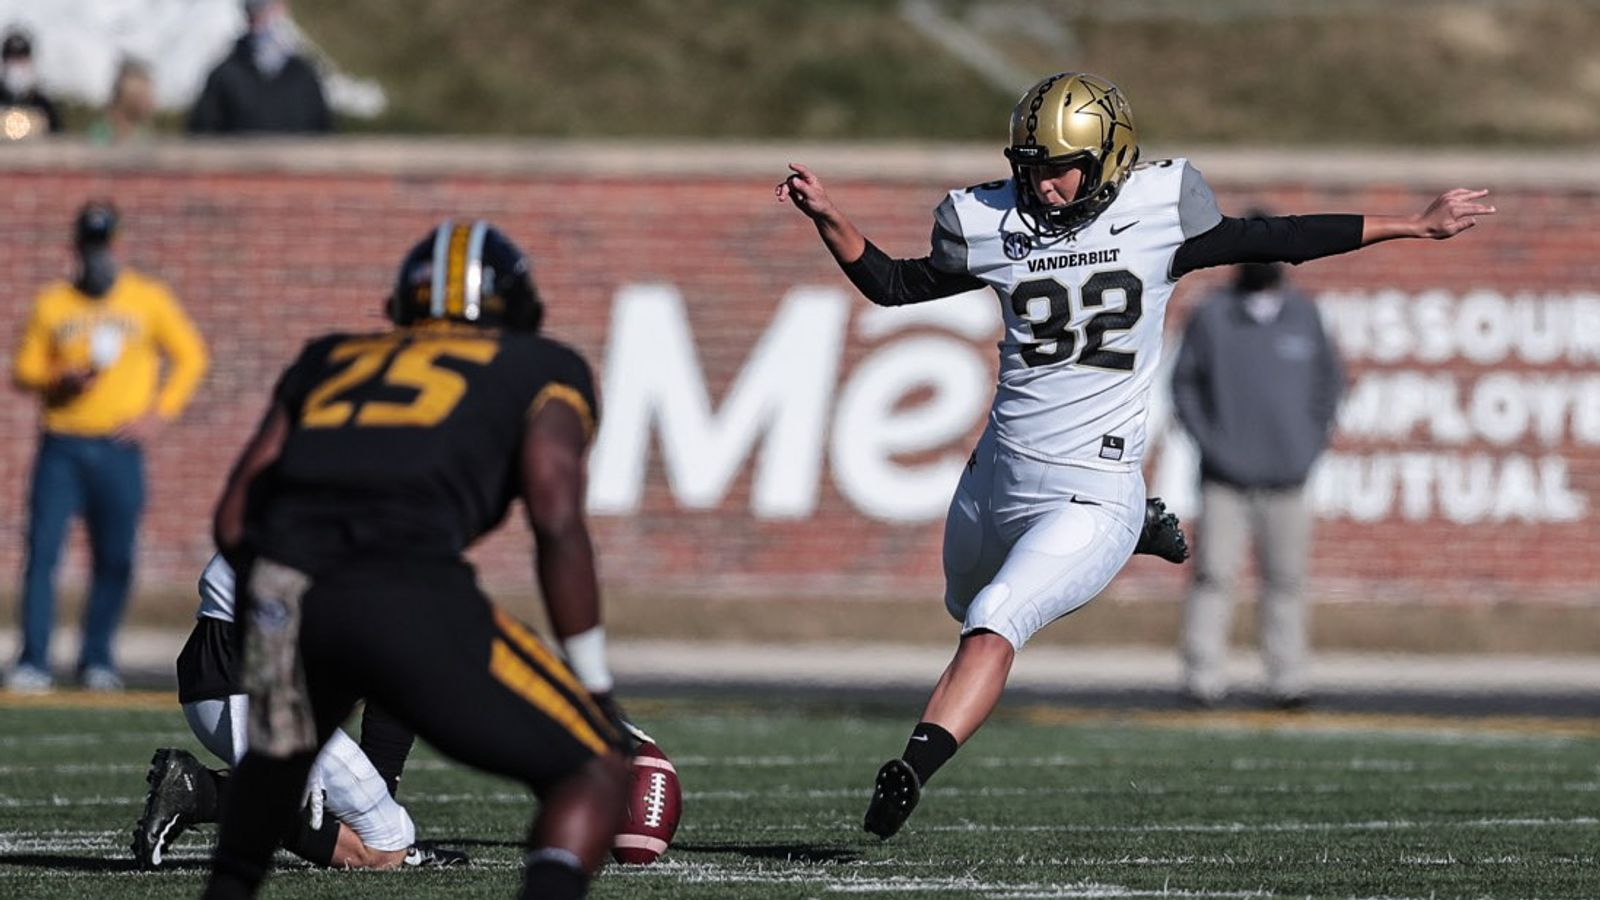 Sarah Fuller becomes first woman to play in a Power 5 college football game - Sky News